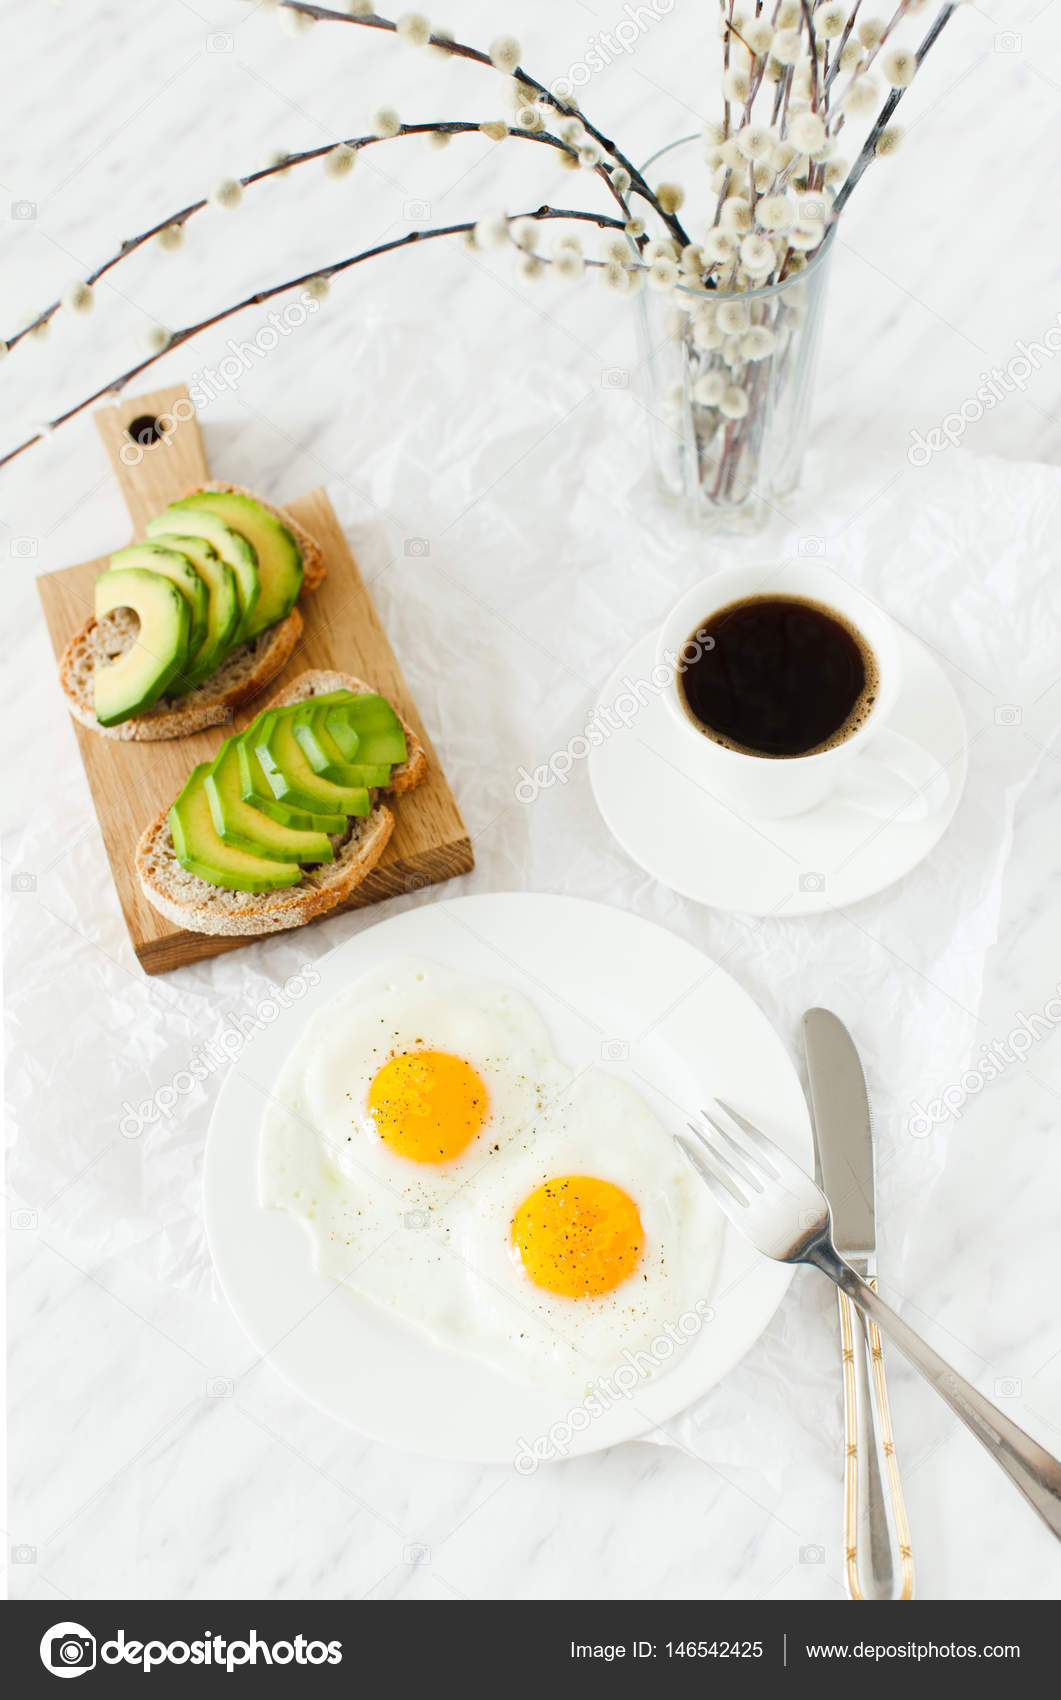 Morning breakfast table setting. On a white plate are two fried eggs on a wooden board sliced avocado a cup of coffee and a vase with a plant. & Morning breakfast table setting. u2014 Stock Photo © oksanastepova ...